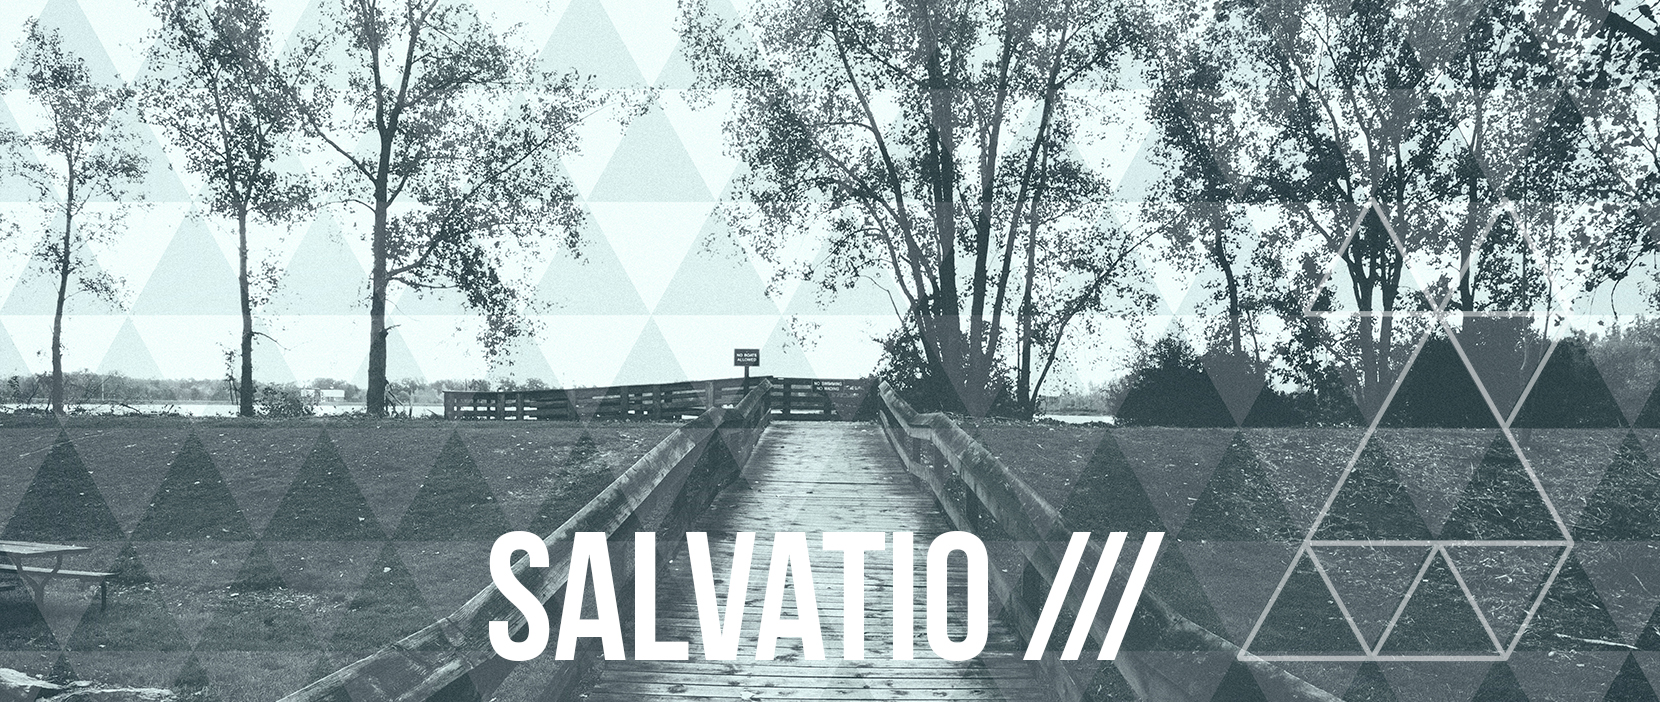 Main image for Salvation.